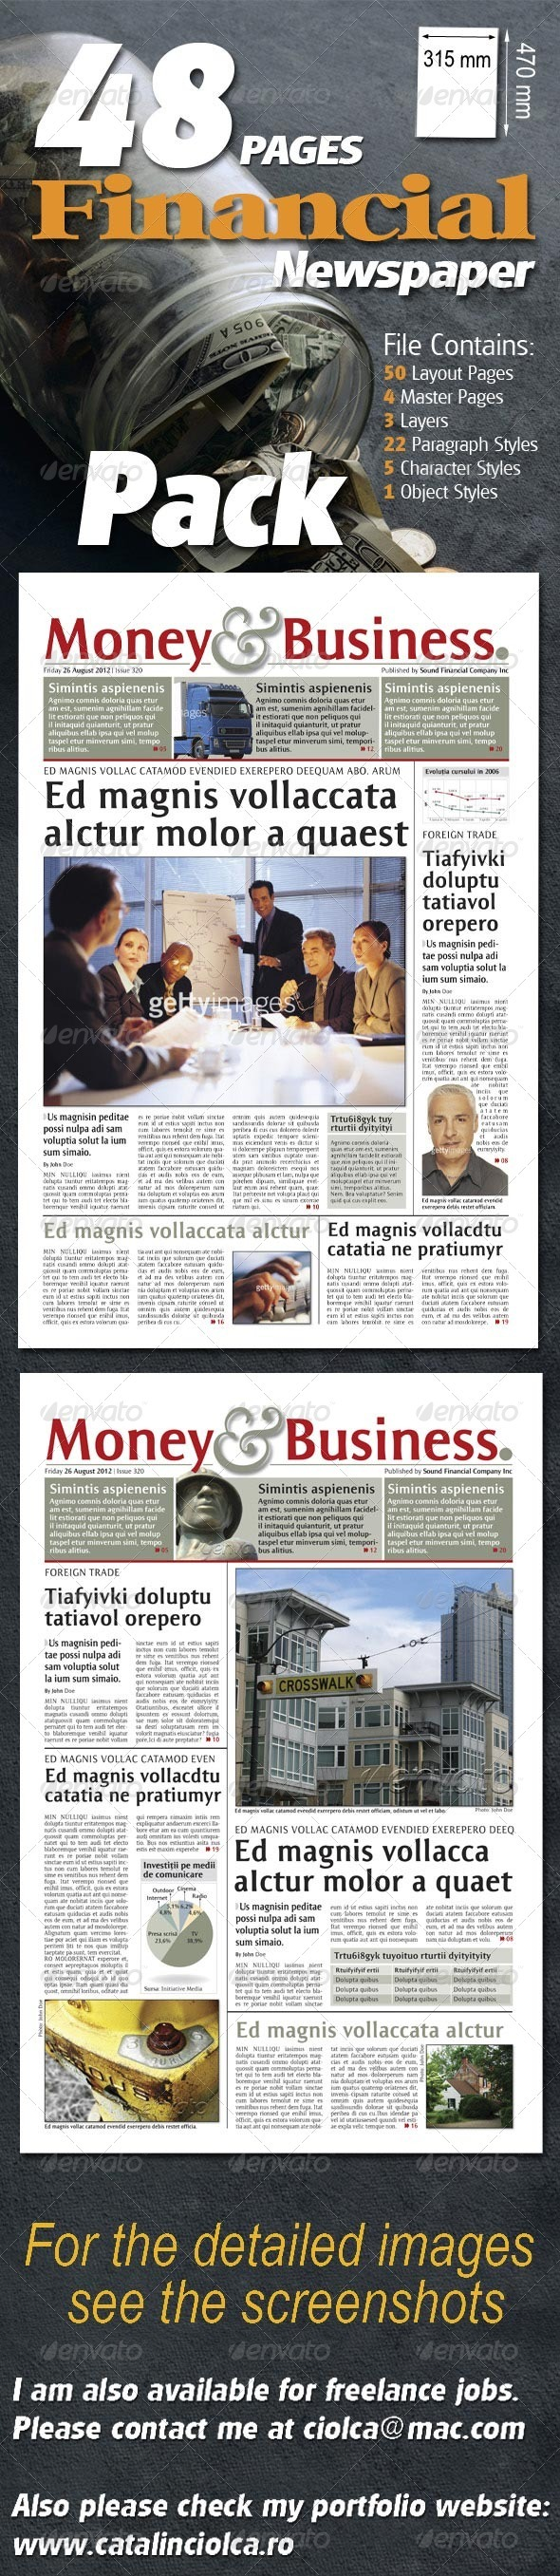 GraphicRiver 48 Pages Financial Newspaper Pack 967309